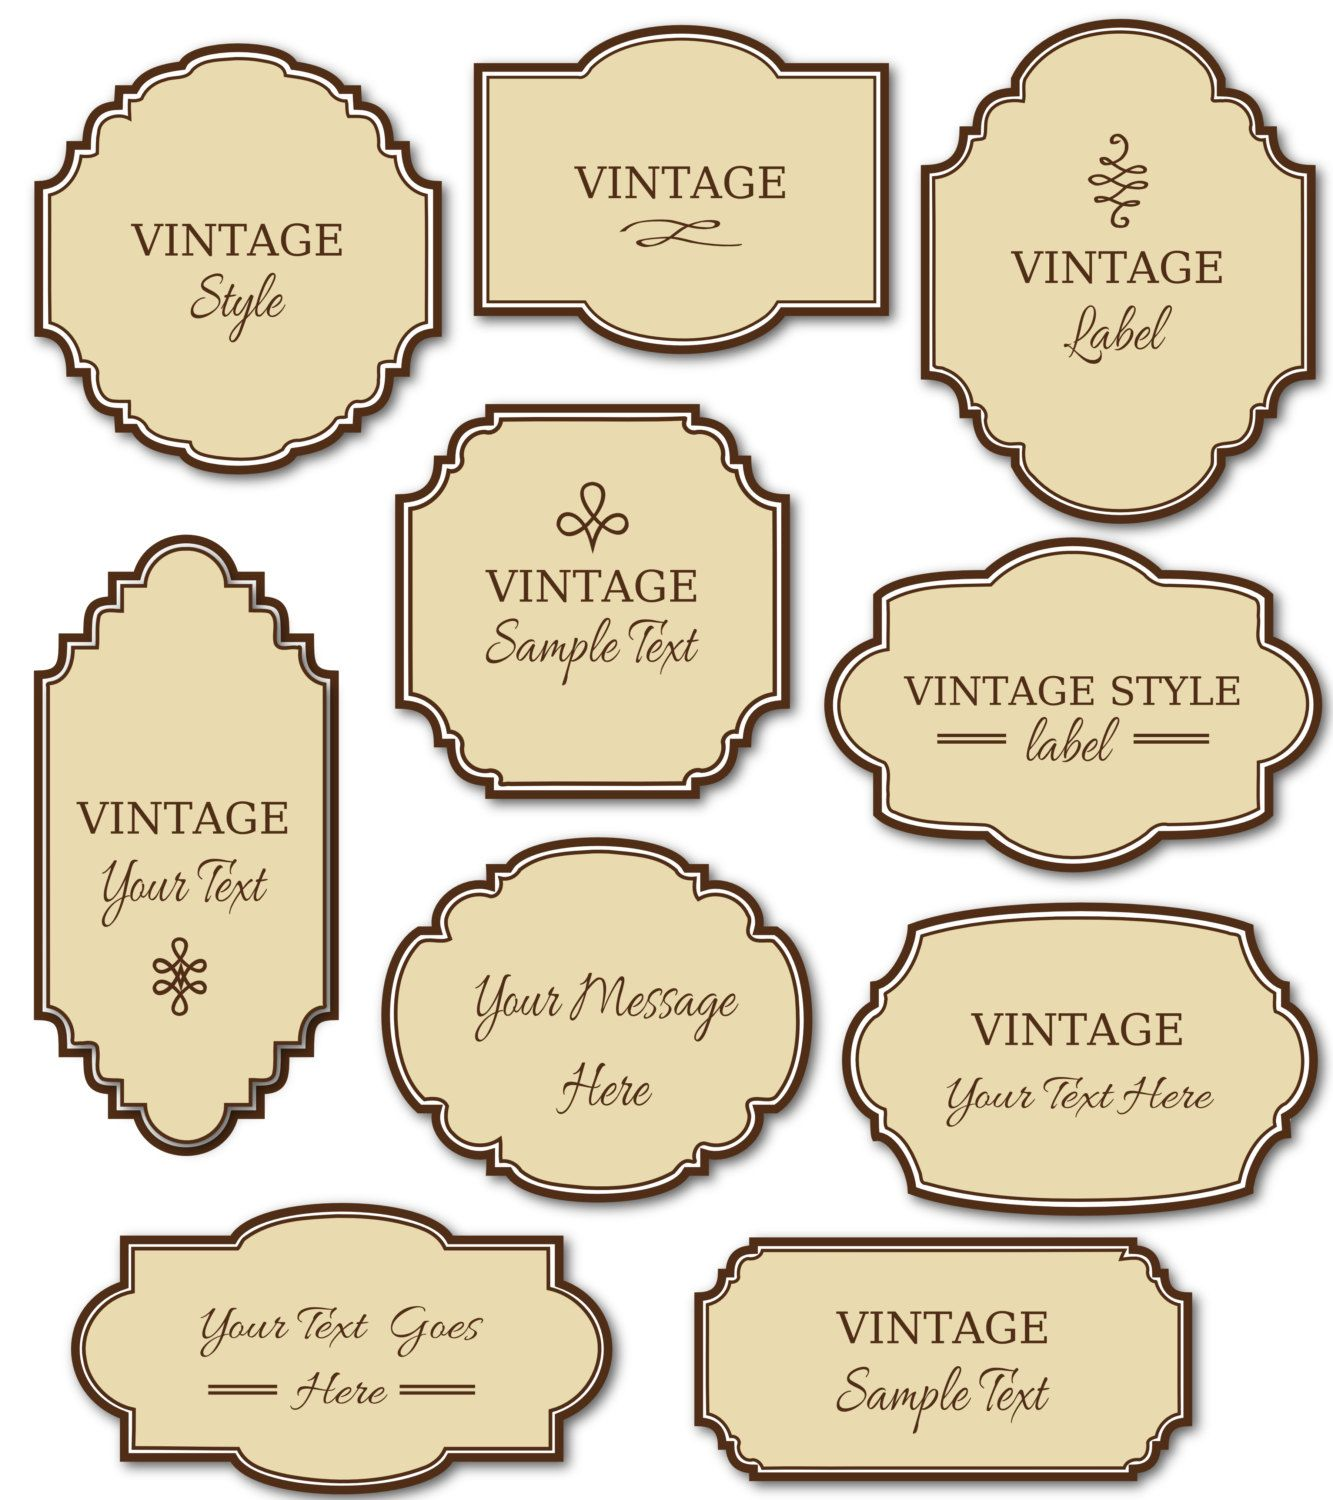 Vintage Perfume Label Prints | Request a custom order and have